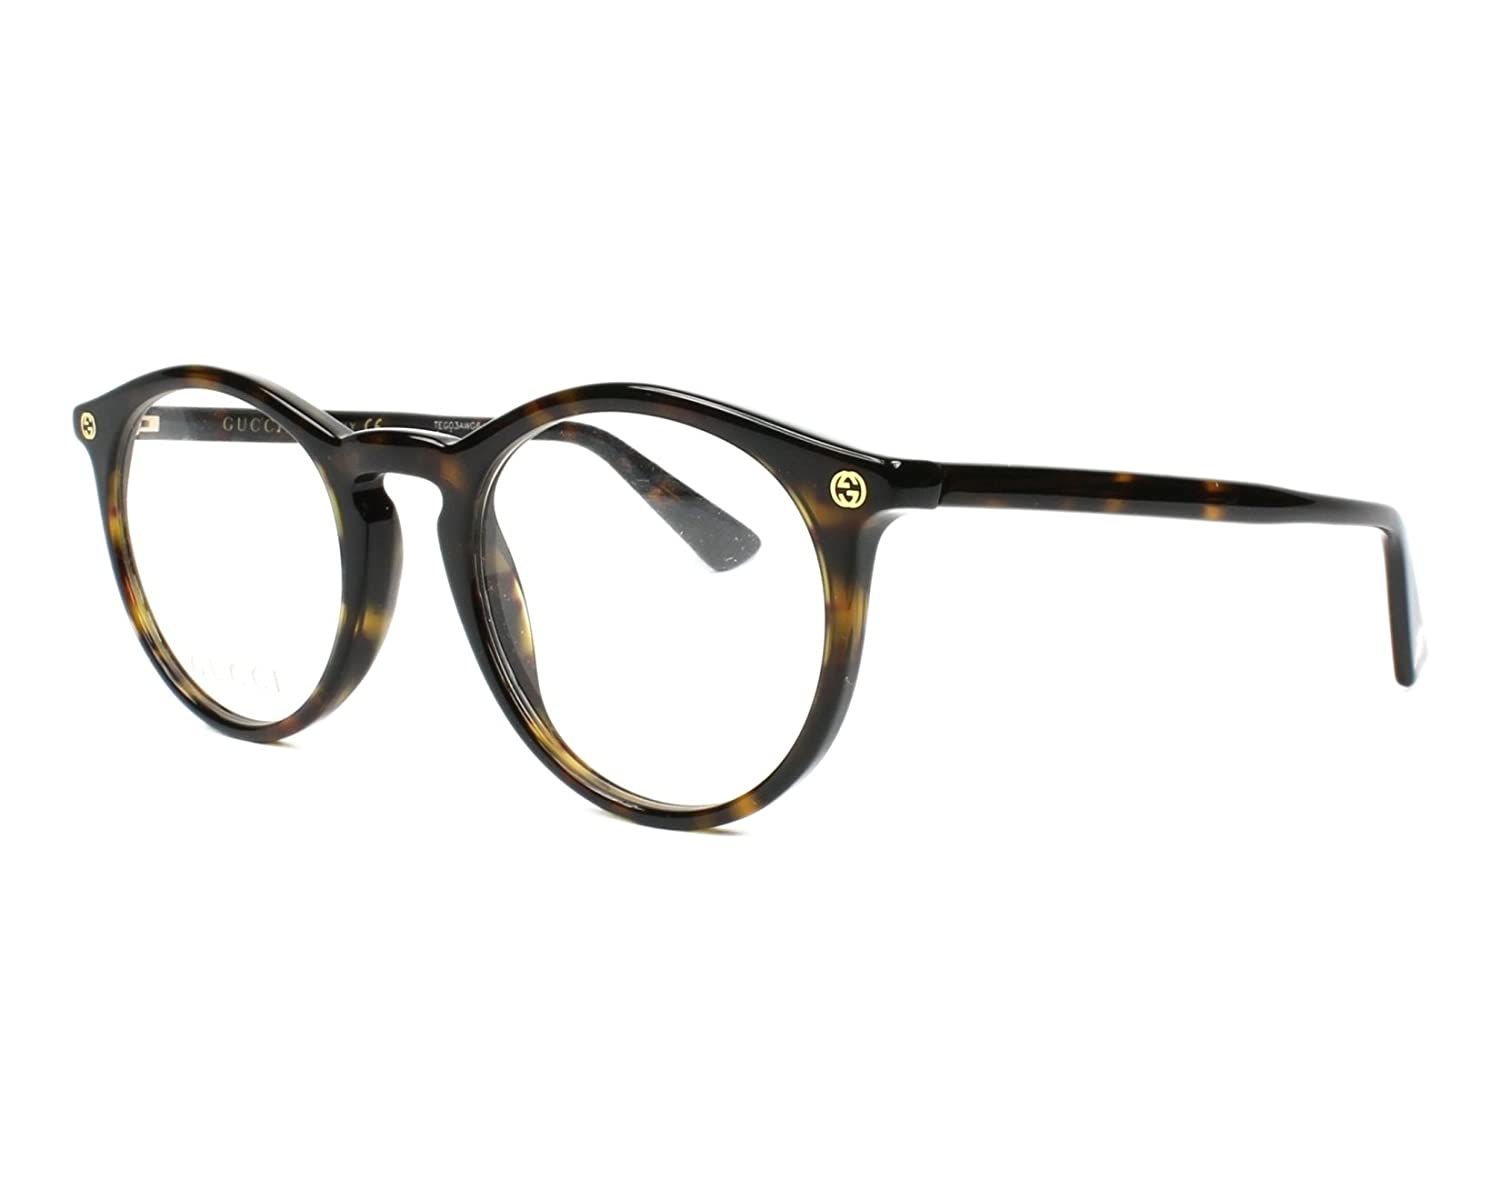 3c5d17a16aa Amazon.com  Eyeglasses Gucci GG 0121 O- 001 BLACK    Clothing